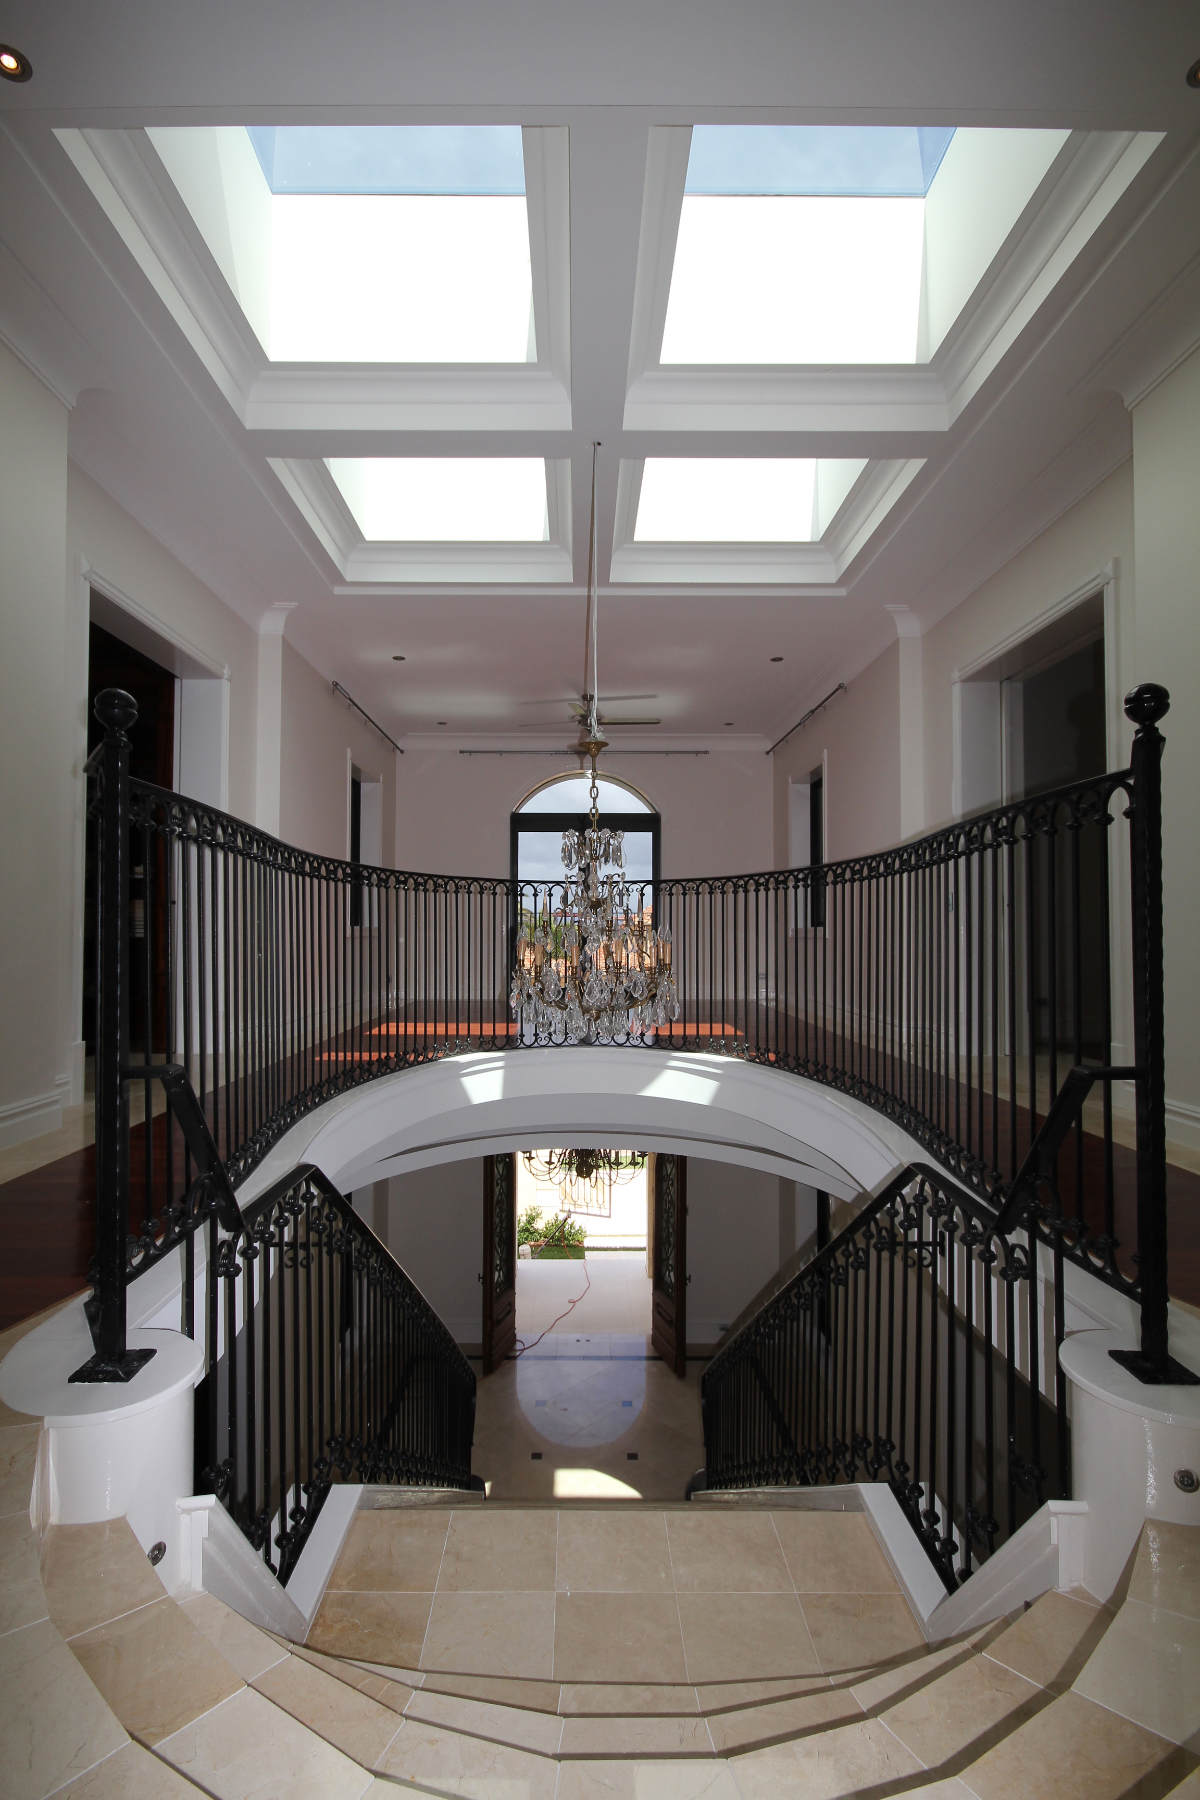 Stairs & Balustrading 1st Floor - 1.JPG